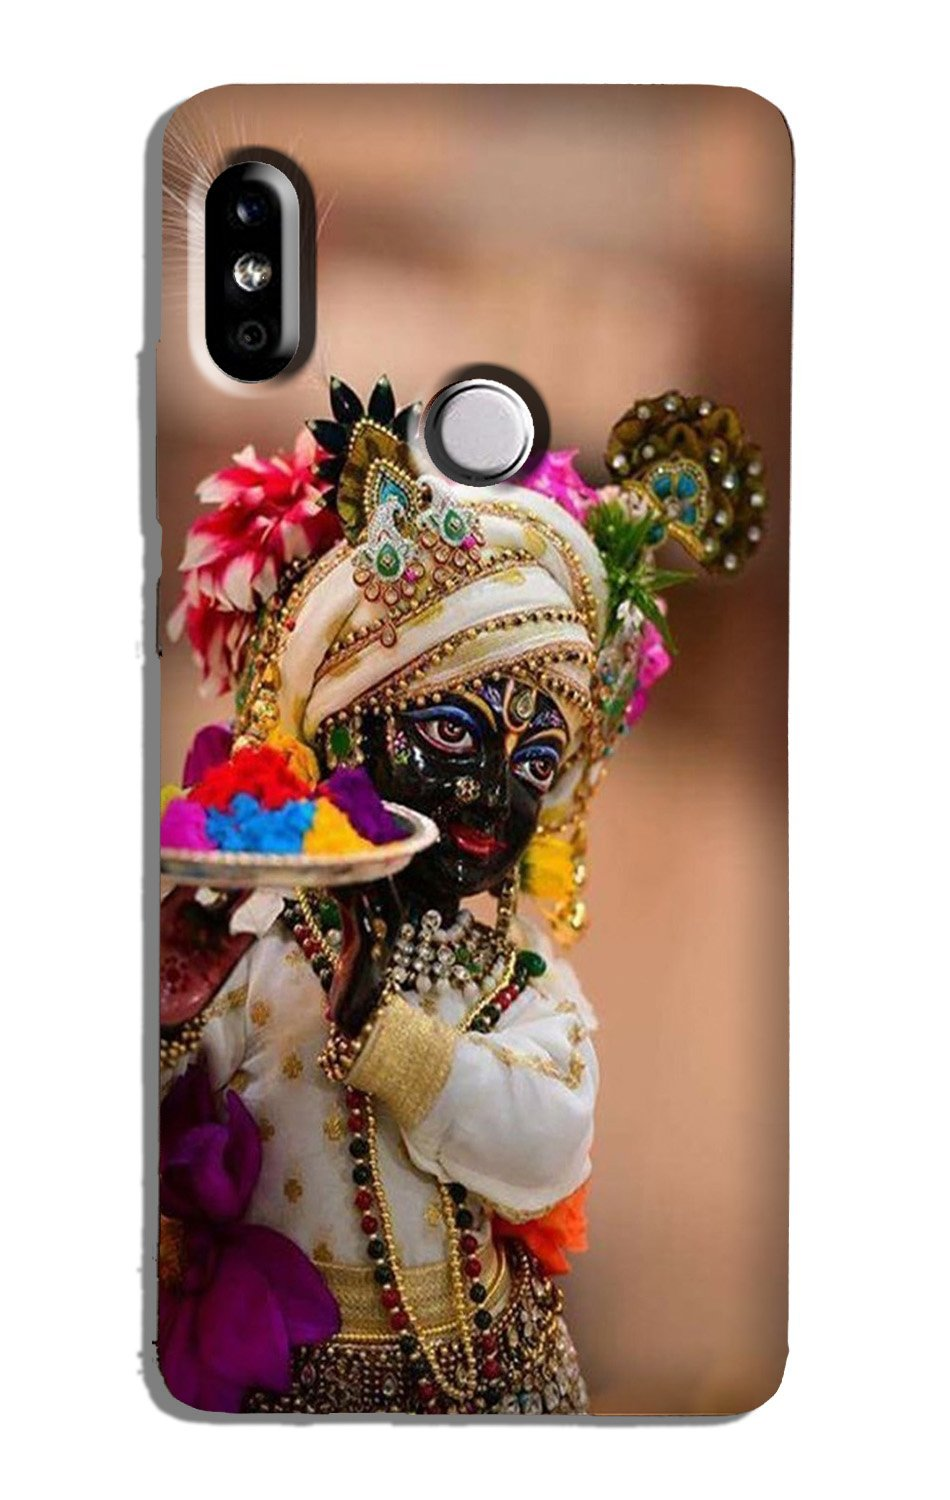 Lord Krishna2 Case for Redmi Note 5 Pro